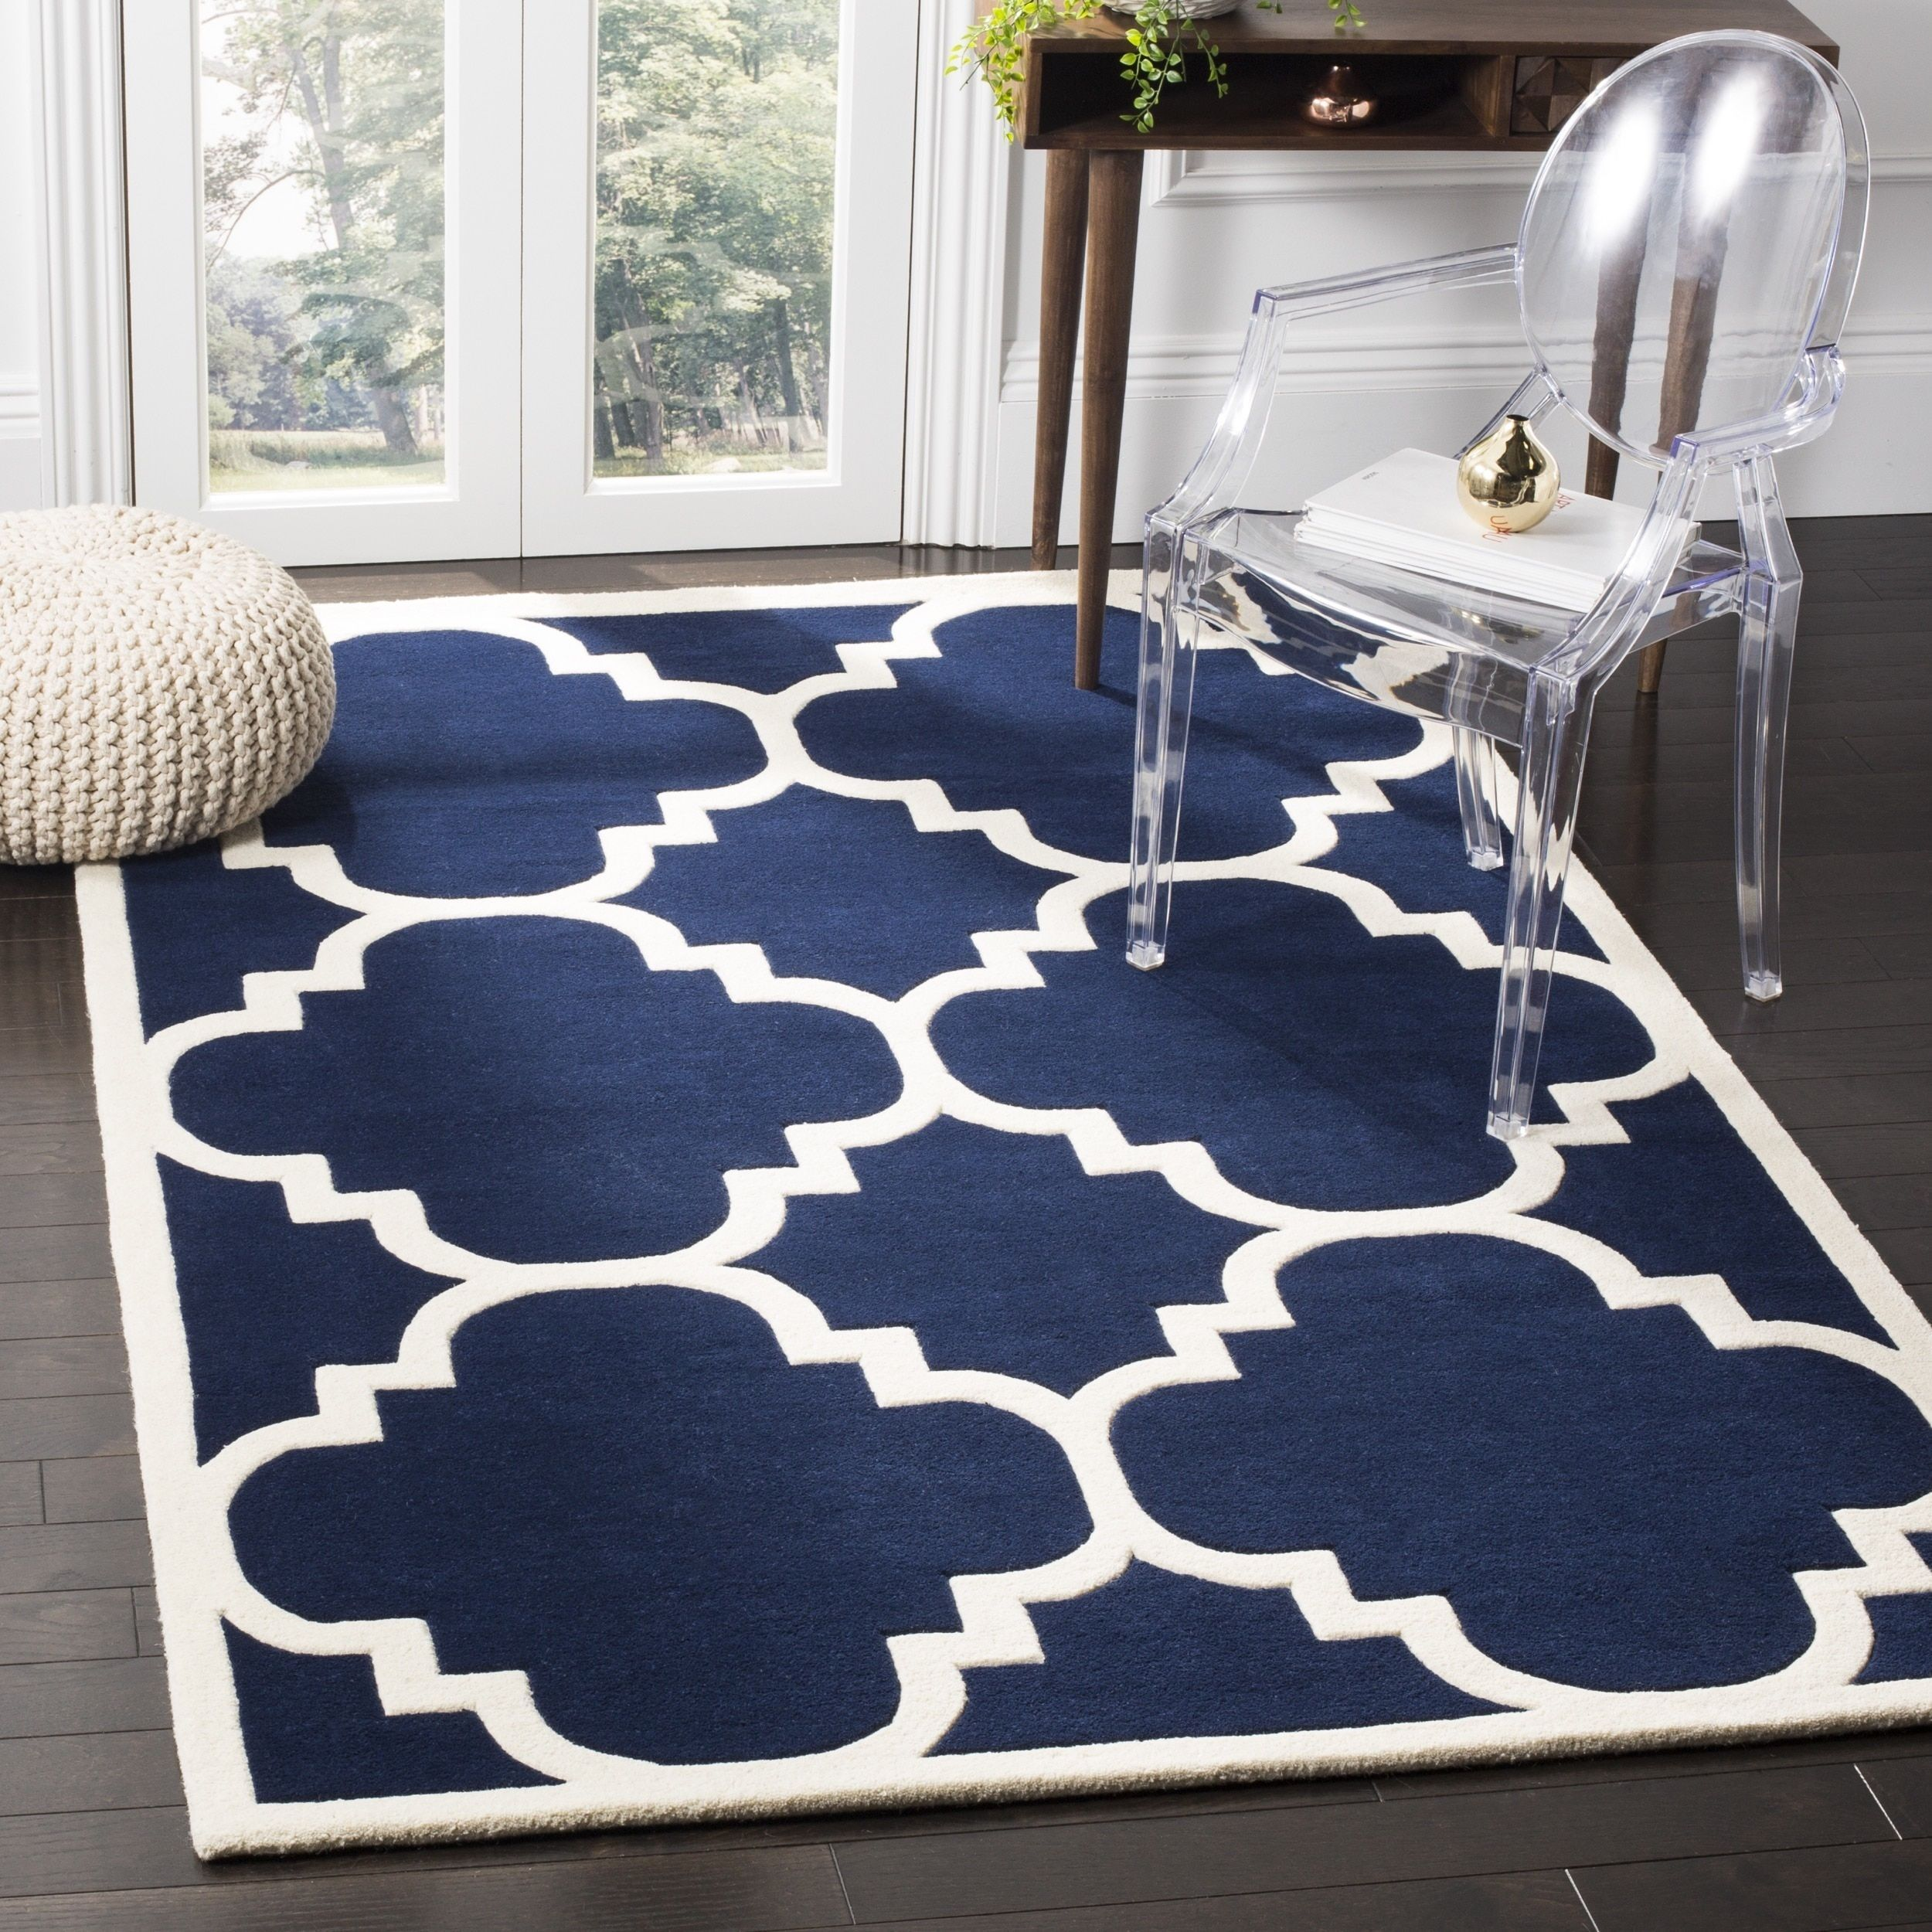 Safavieh Handmade Moroccan Chatham Geometric Pattern Dark Blue Wool